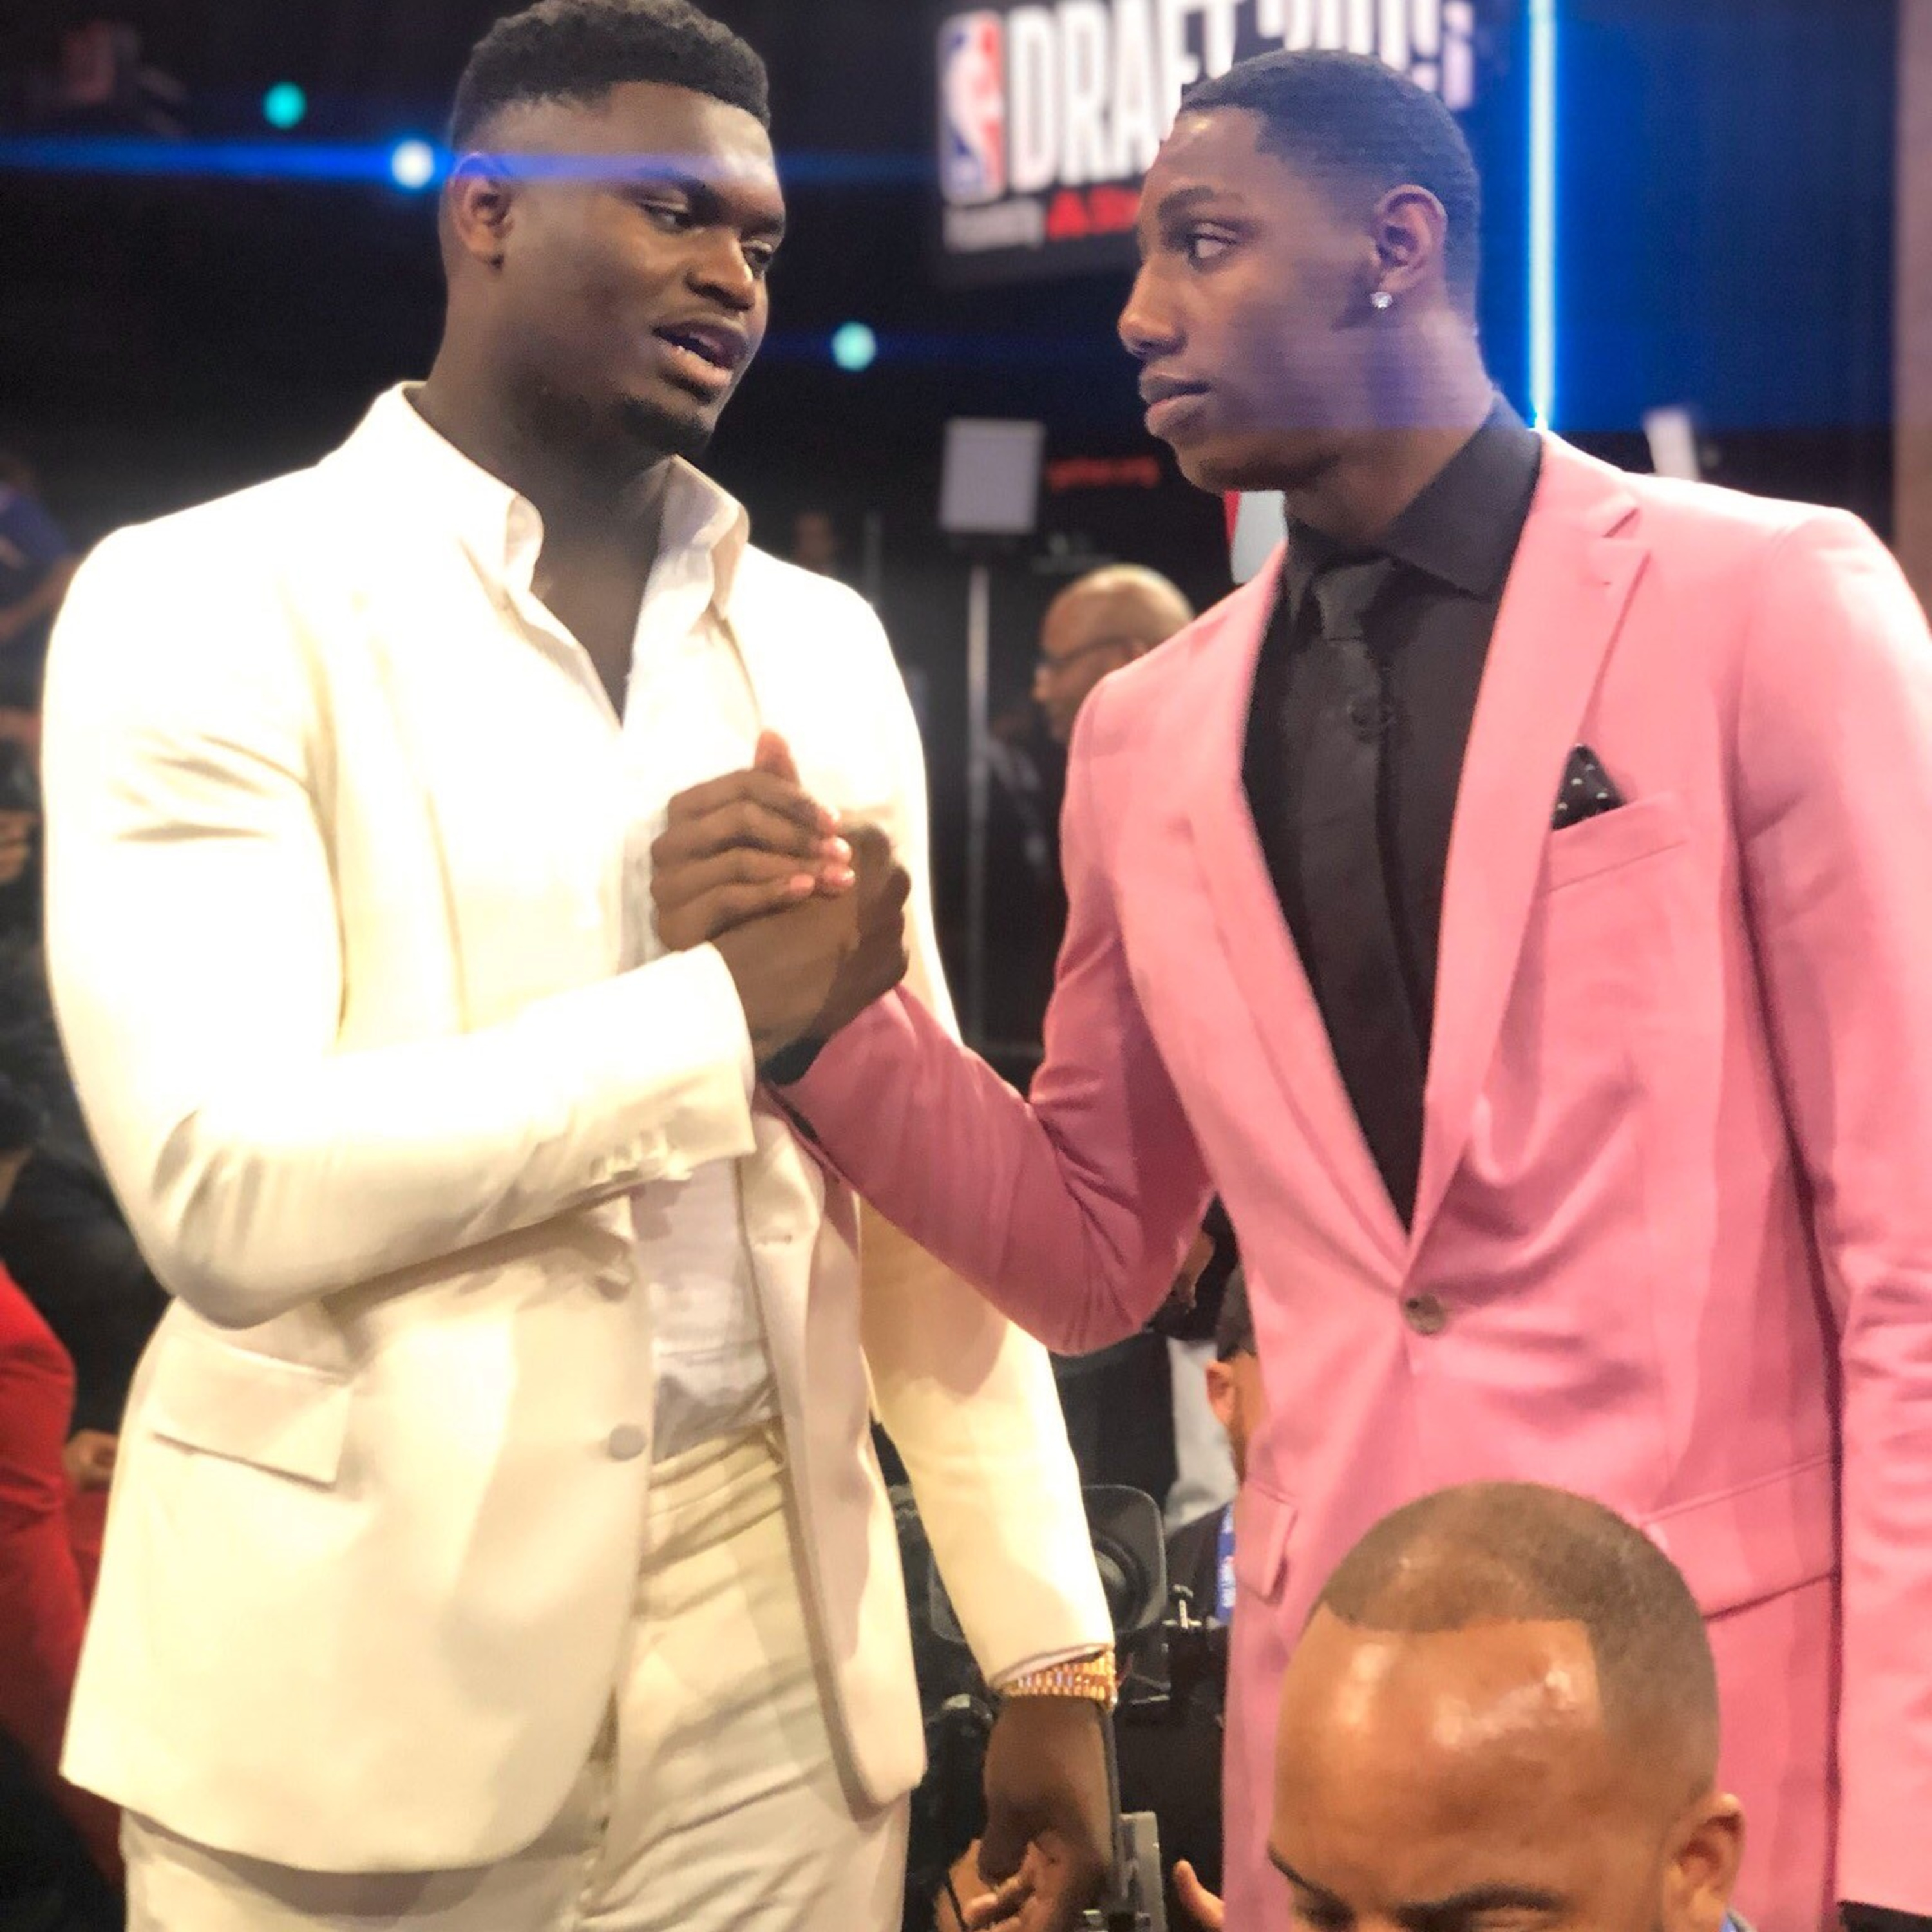 NBA draft room radio: The Zion Williamson Era, Why passing on Bol Bol will have NBA teams on the wrong side of history, and why passing on Cam Reddish will put teams scouting departments in question plus more